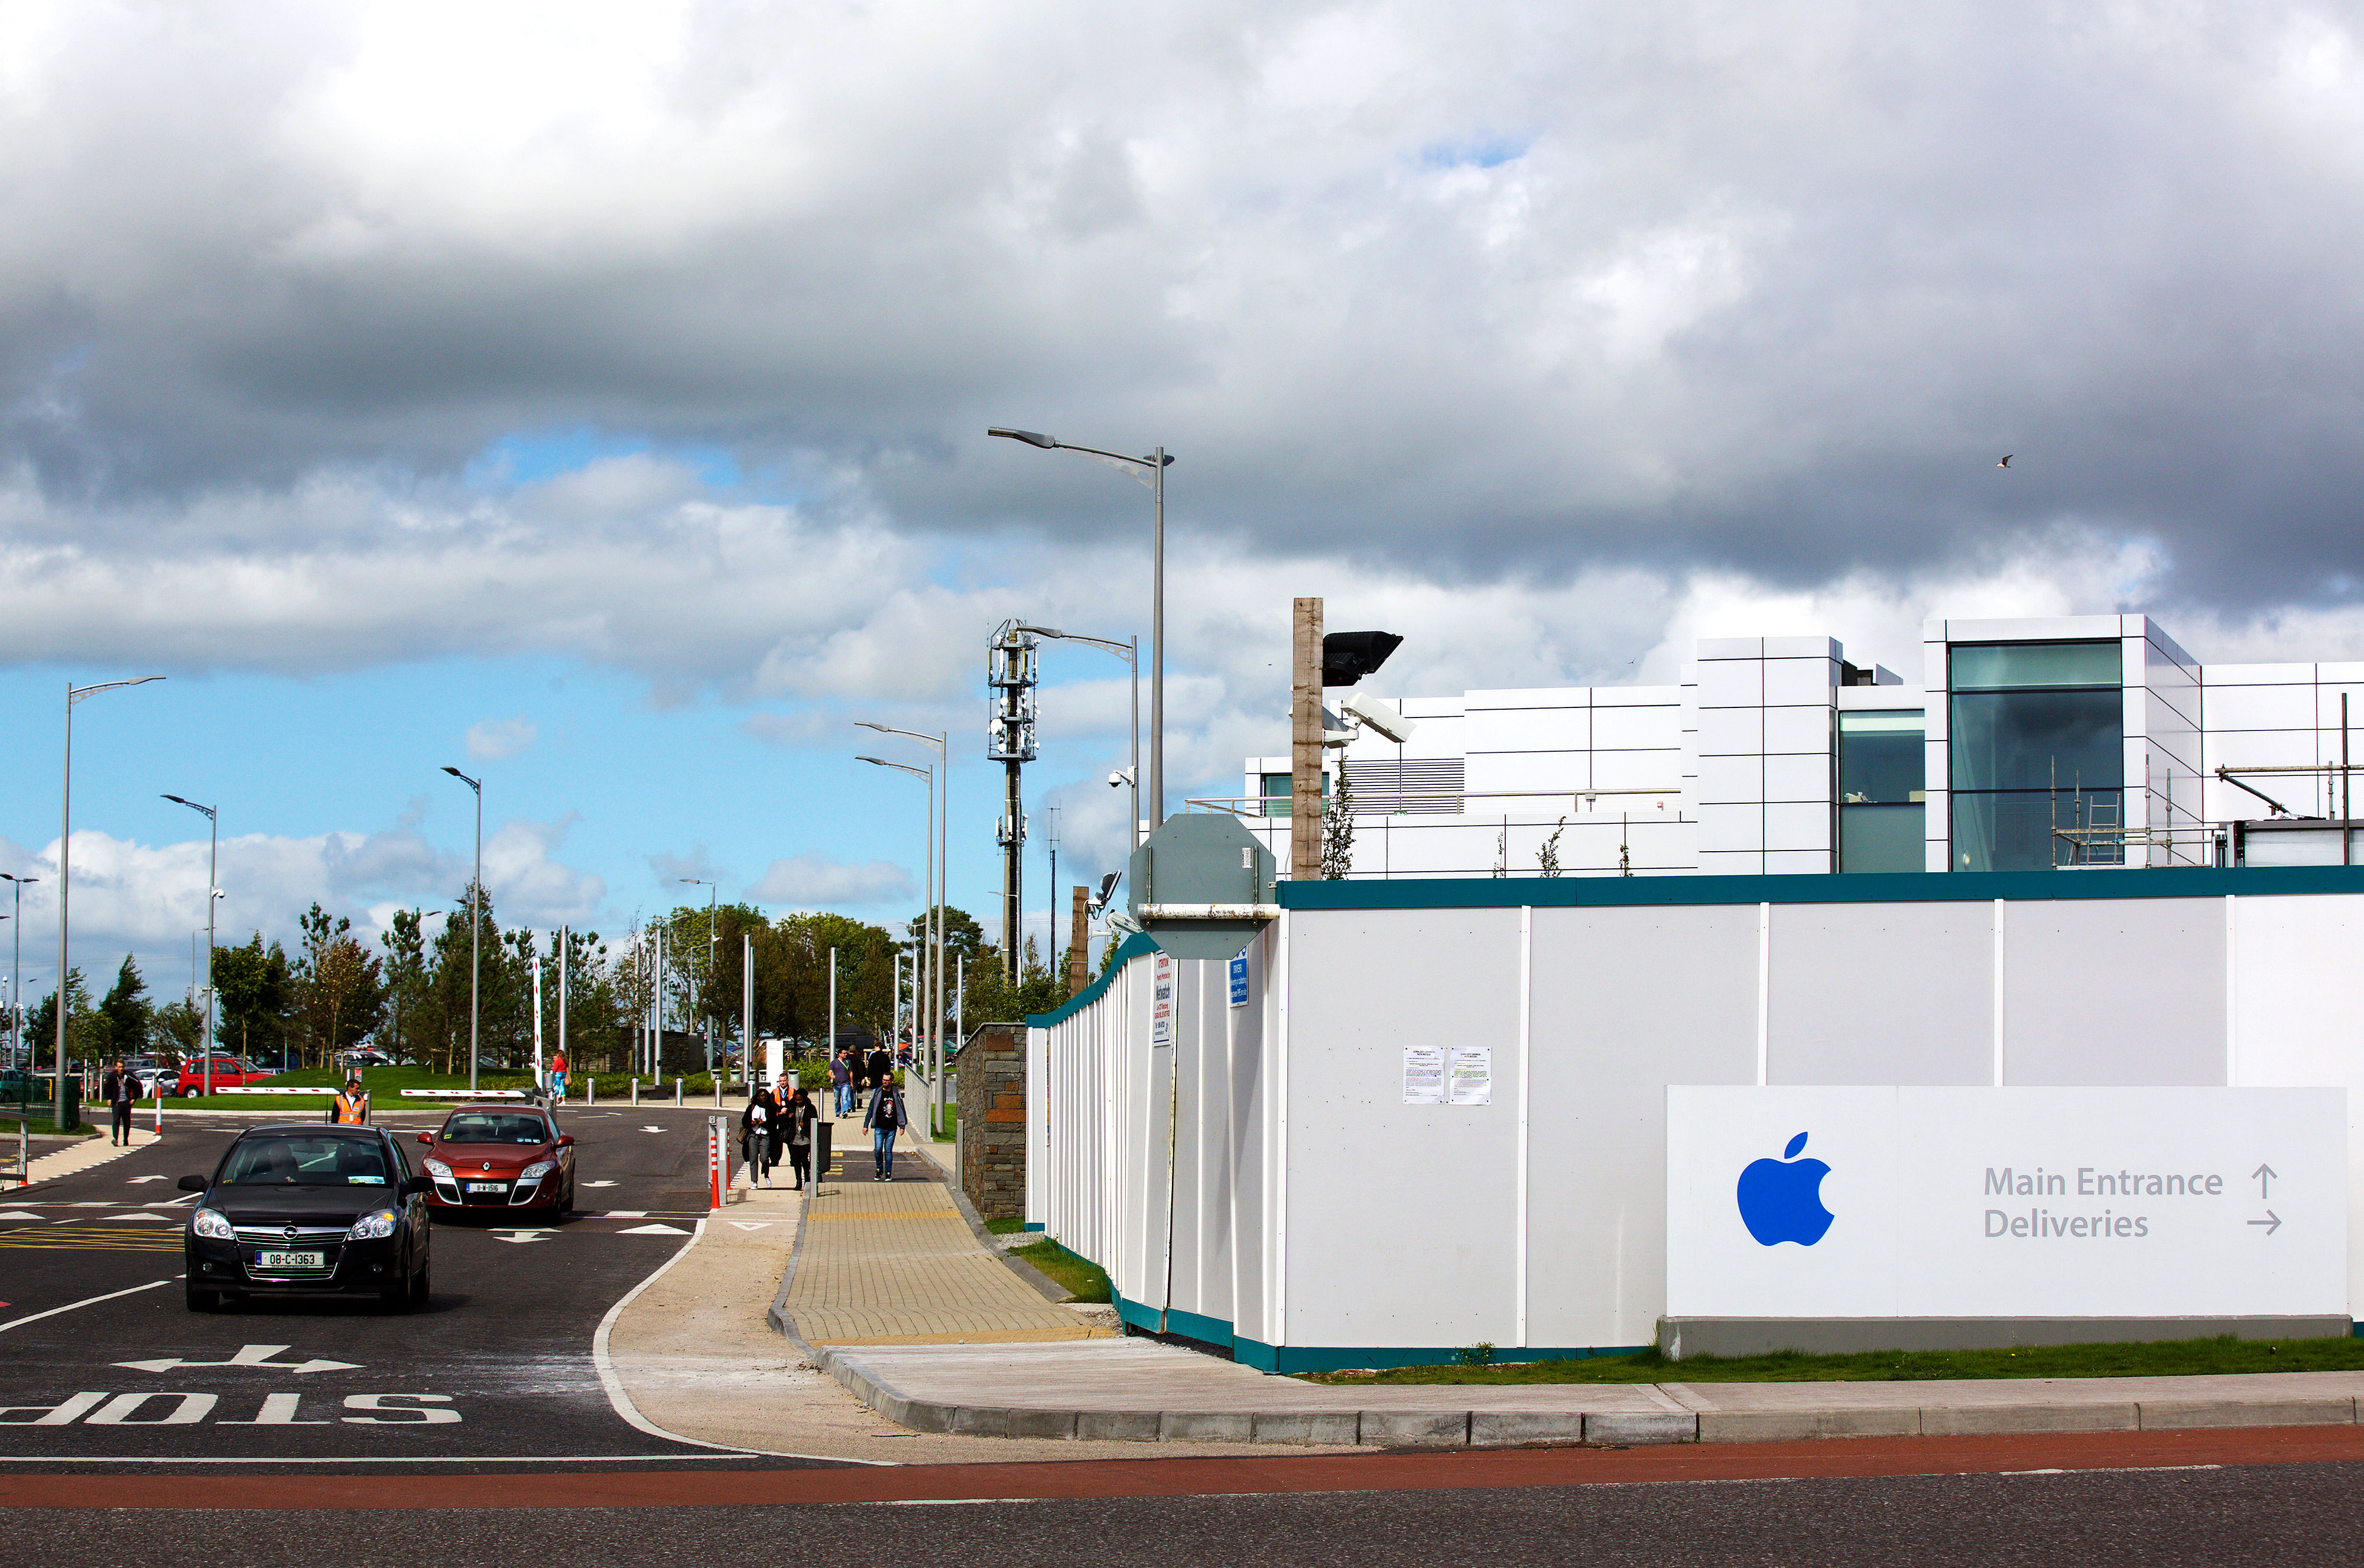 Apple Inc. Headquarters In Ireland As They Face $14.5 billion Tax Bill